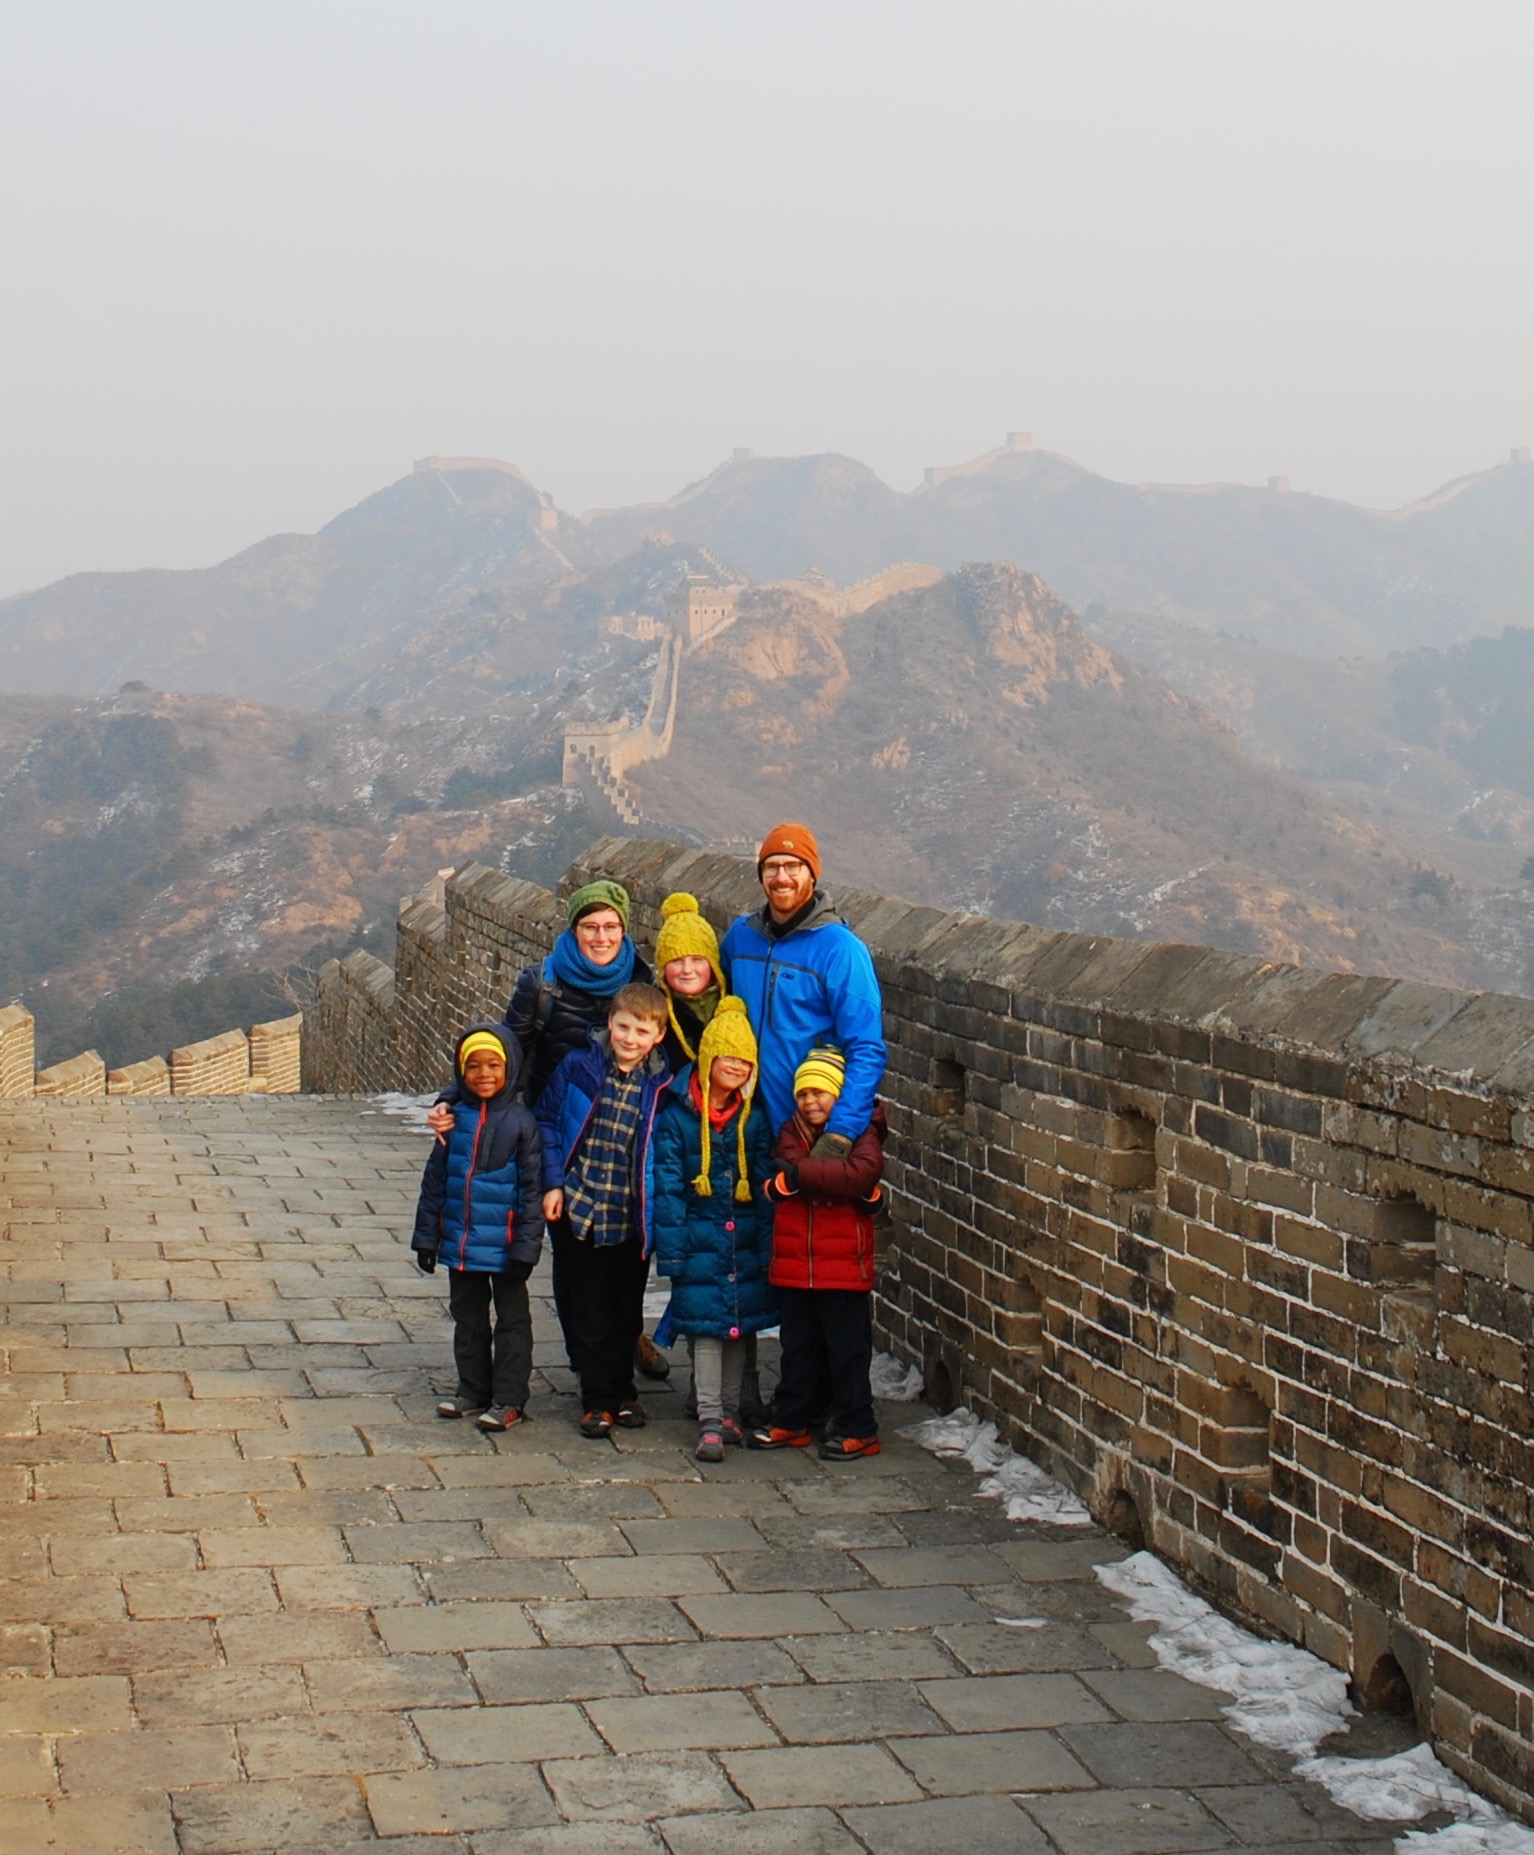 Andie and her family at The Great Wall of China!